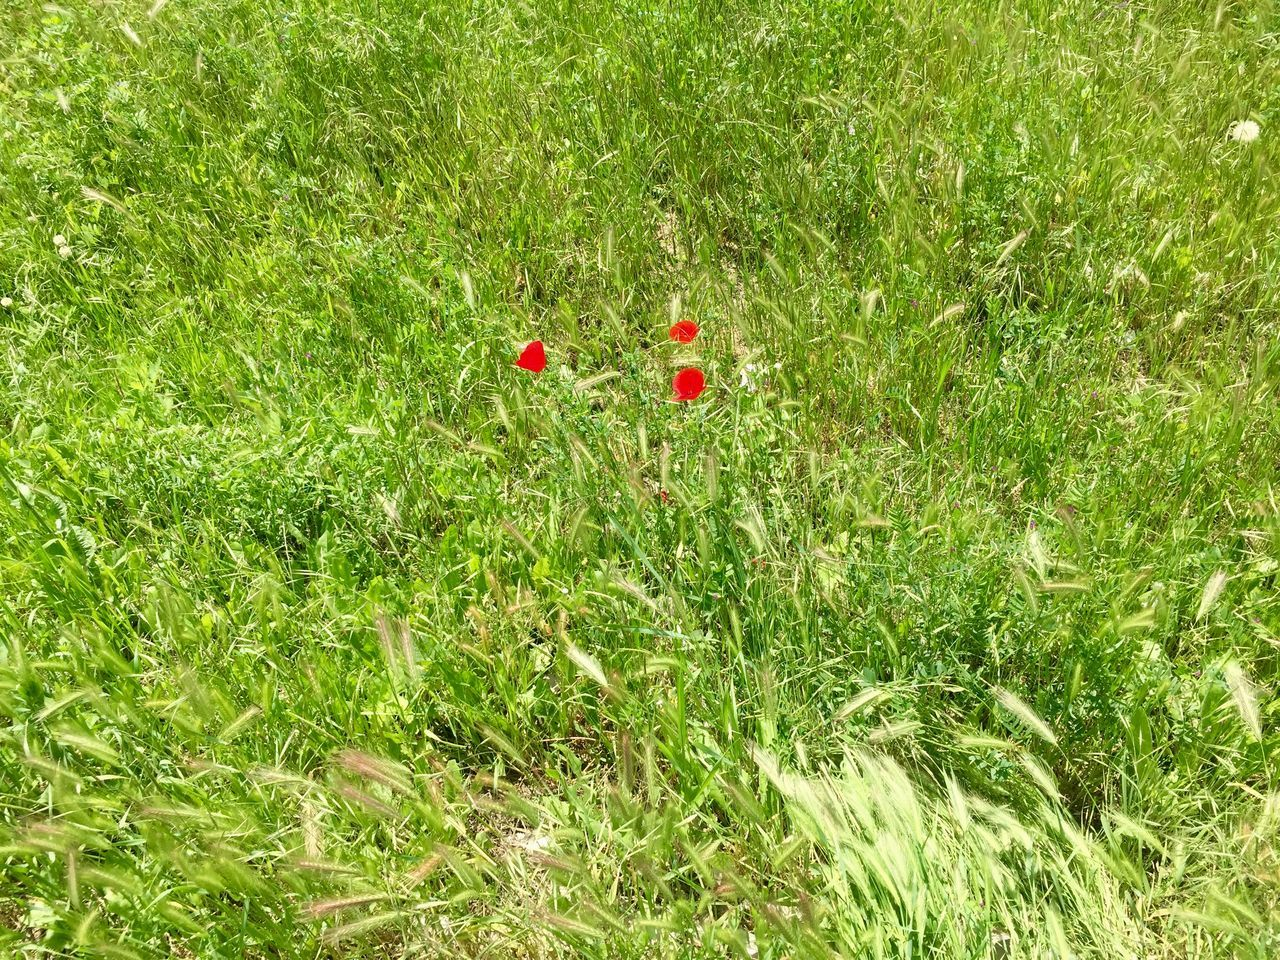 Day Field Field Flower Flowers Grass Green Green Color Green Field Growth Ladybug Nature Nature No People Outdoor Outdoors Poppy Red Unexpected